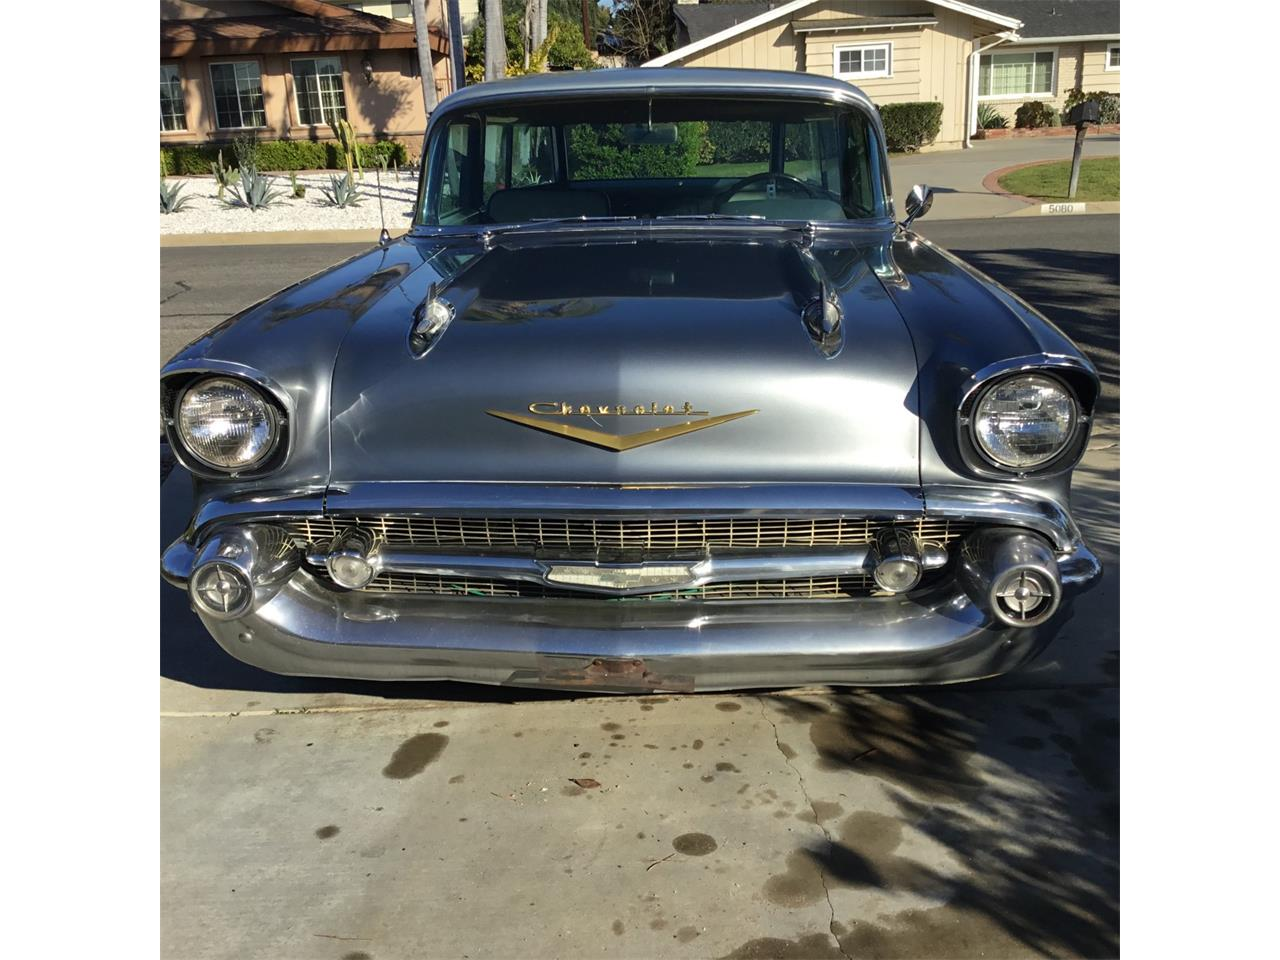 1957 Chevrolet Nomad (CC-1253138) for sale in Buena Park, Calif